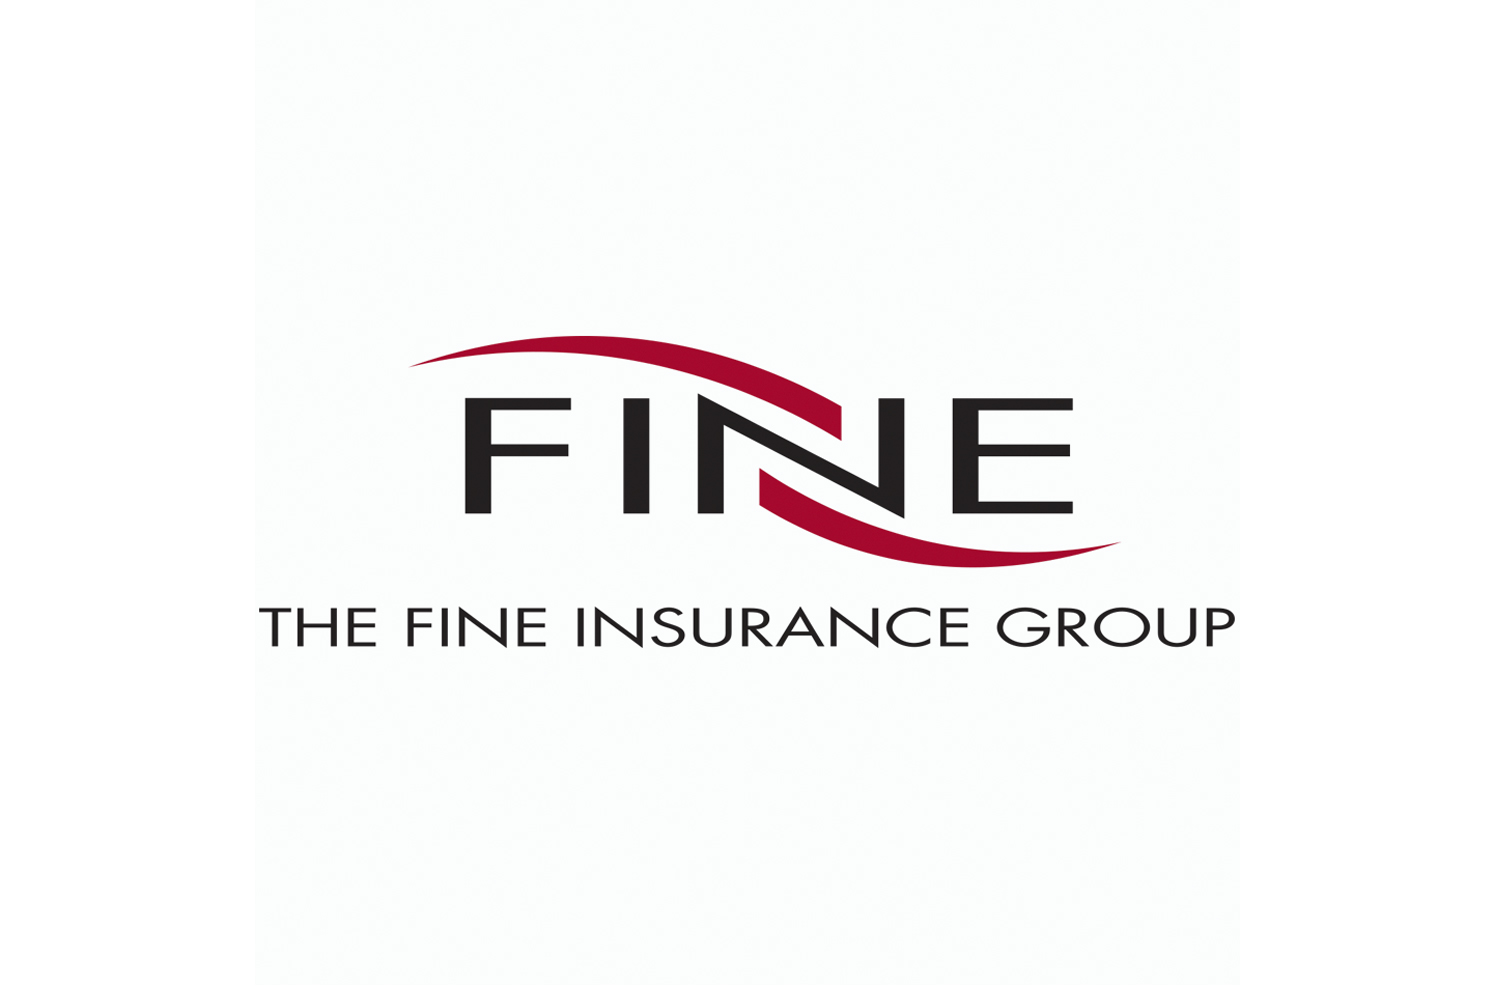 logo design sample for Fine Insurance Group